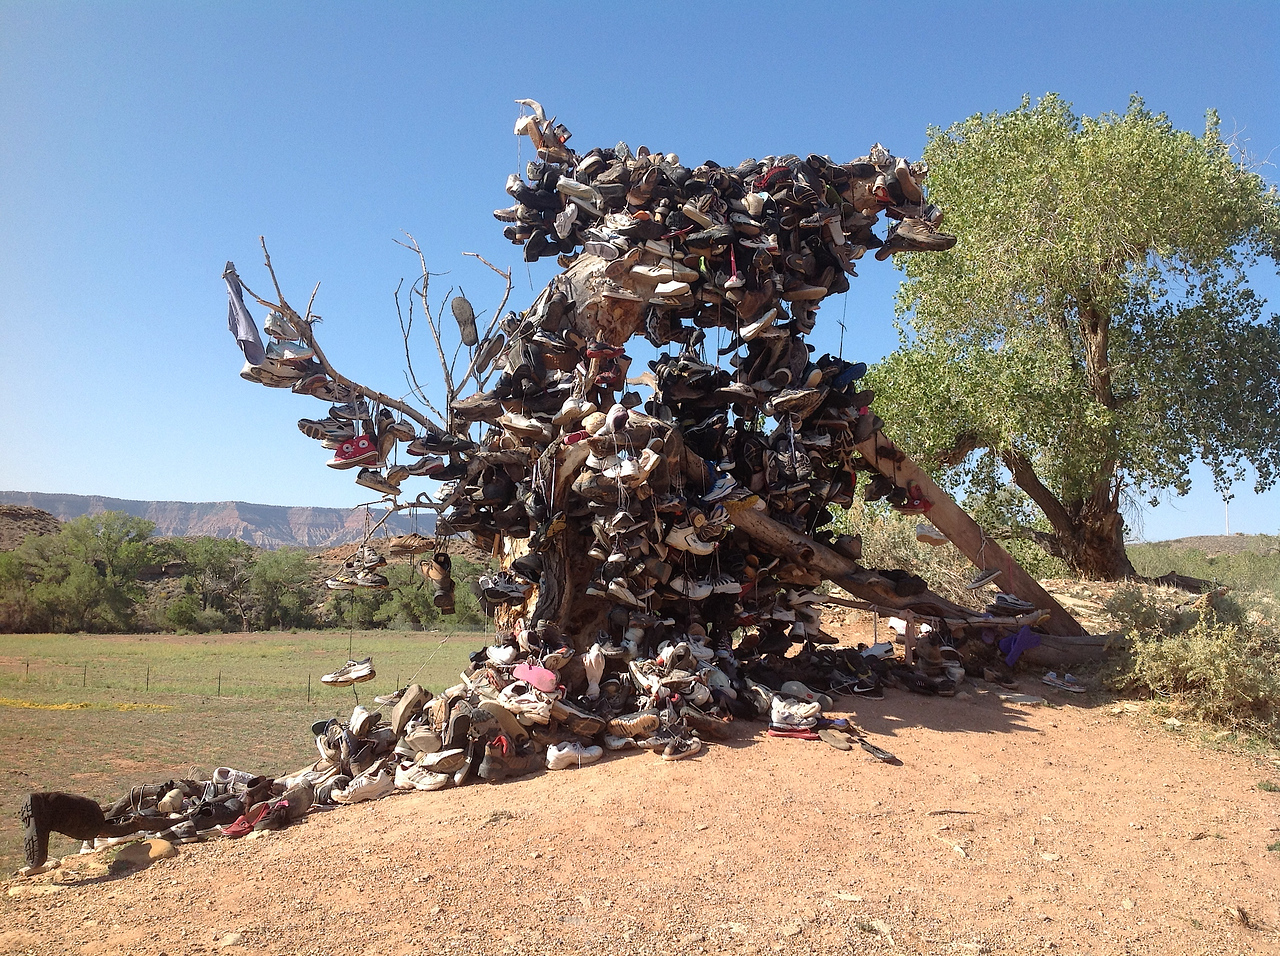 The Shoe Tree outside of Zion National Park. Legend has it that the shoes/boots are hung here in tribute to the Angels Landing hike in Zion National Park - because once you have completed this hair-raising hike, you may as well hang up your boots as nothing else exists to compare with it.